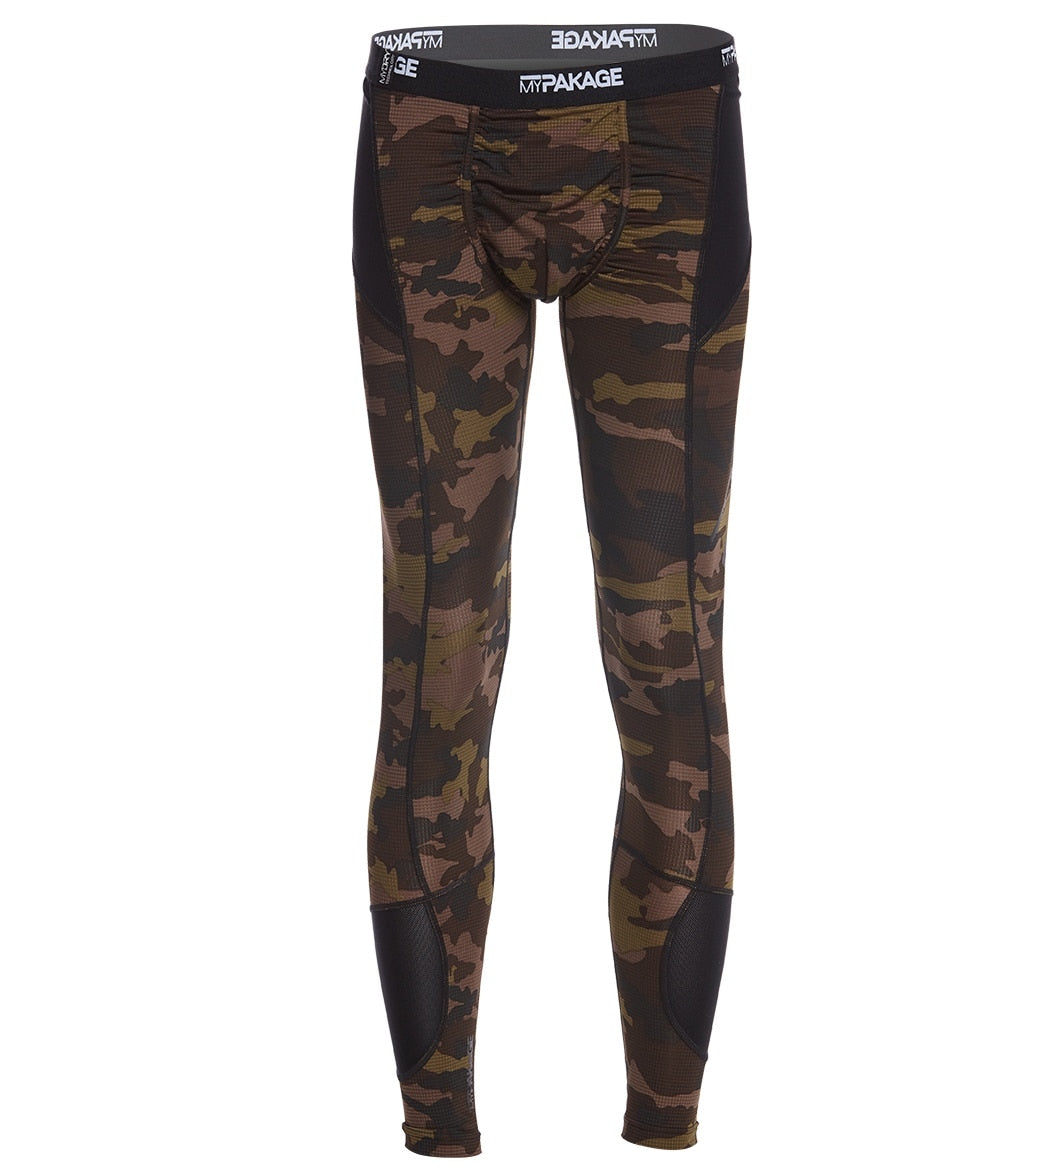 Get maximum coverage and support with the MyPakage Men\\\'s Camo Pro-X Full Length Legging. Made with MyDRY fabric that keeps you cool and dry, these leggings have a no-roll waistband and a two-layer construction that provides excellent performance for athletes. Fabric & Care 100% Polyester. Machine wash cold, tumble dry. Features Keyhole Technology: - 3 dimensional pouch for maximum support. - Eliminates the need to rearrange or adjust. - Prevents chafing. - Decreases temperature, keeping you dry.